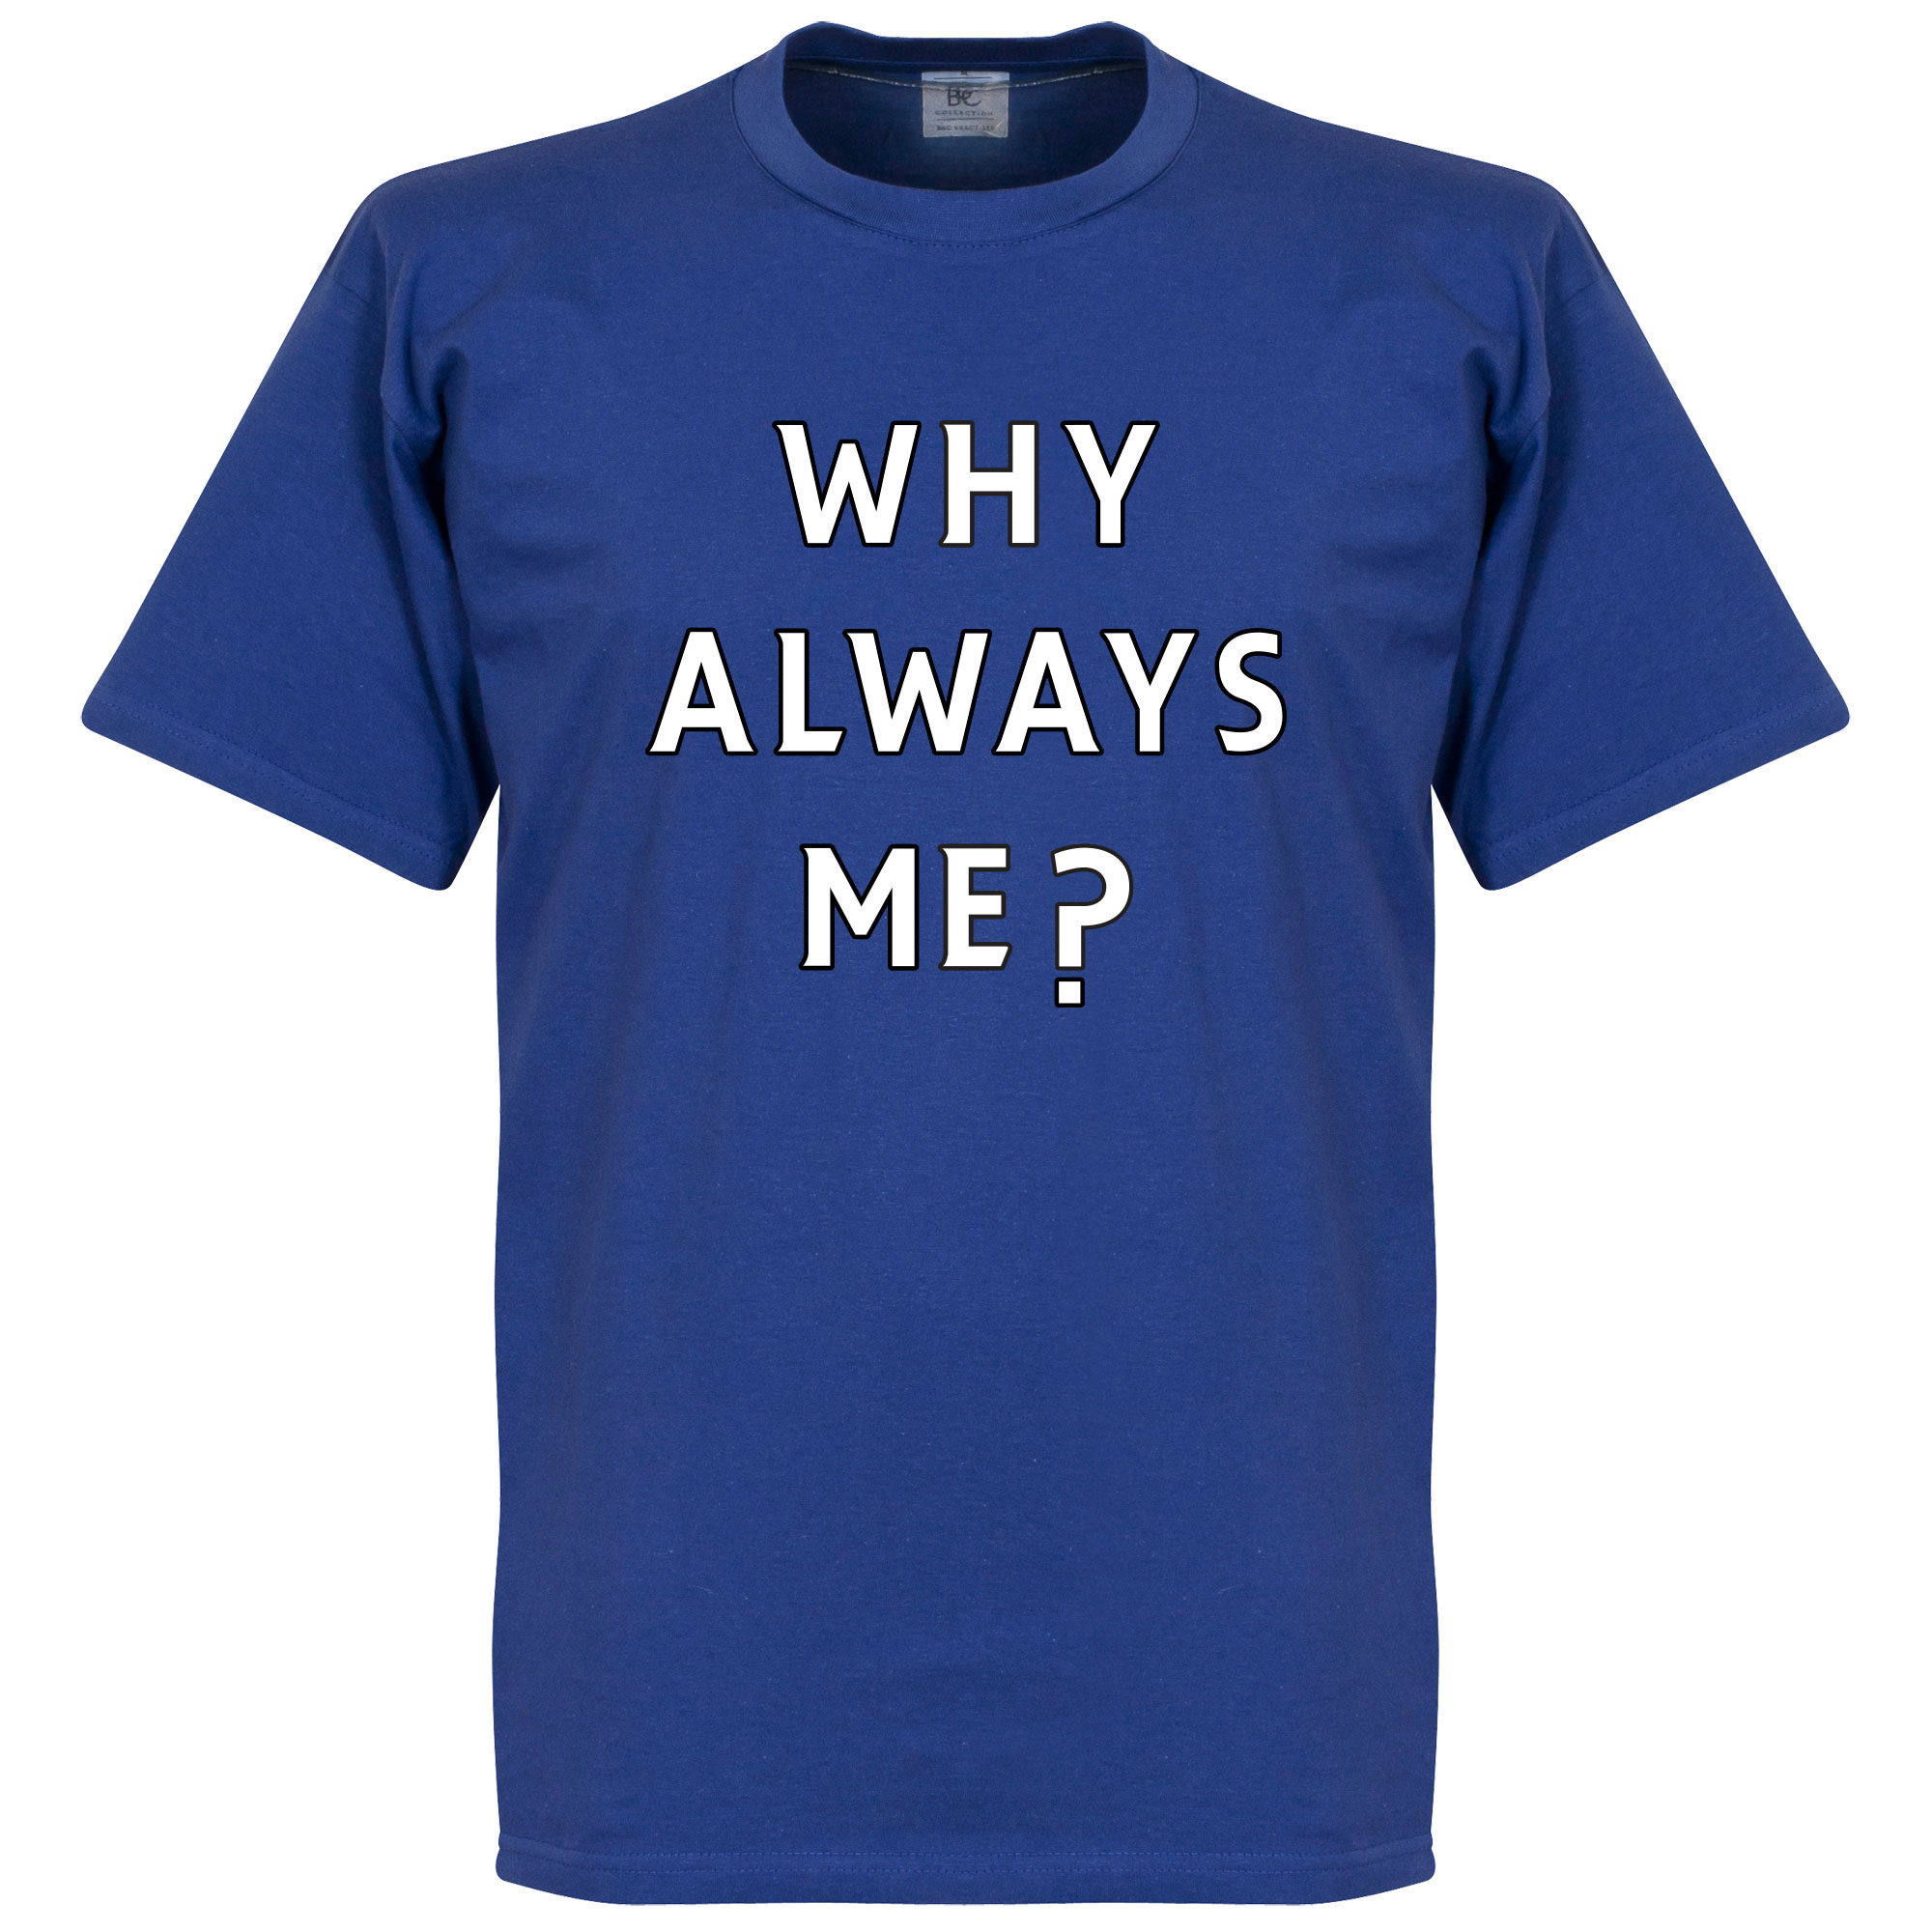 Why Always Me? Tee - Royal - S